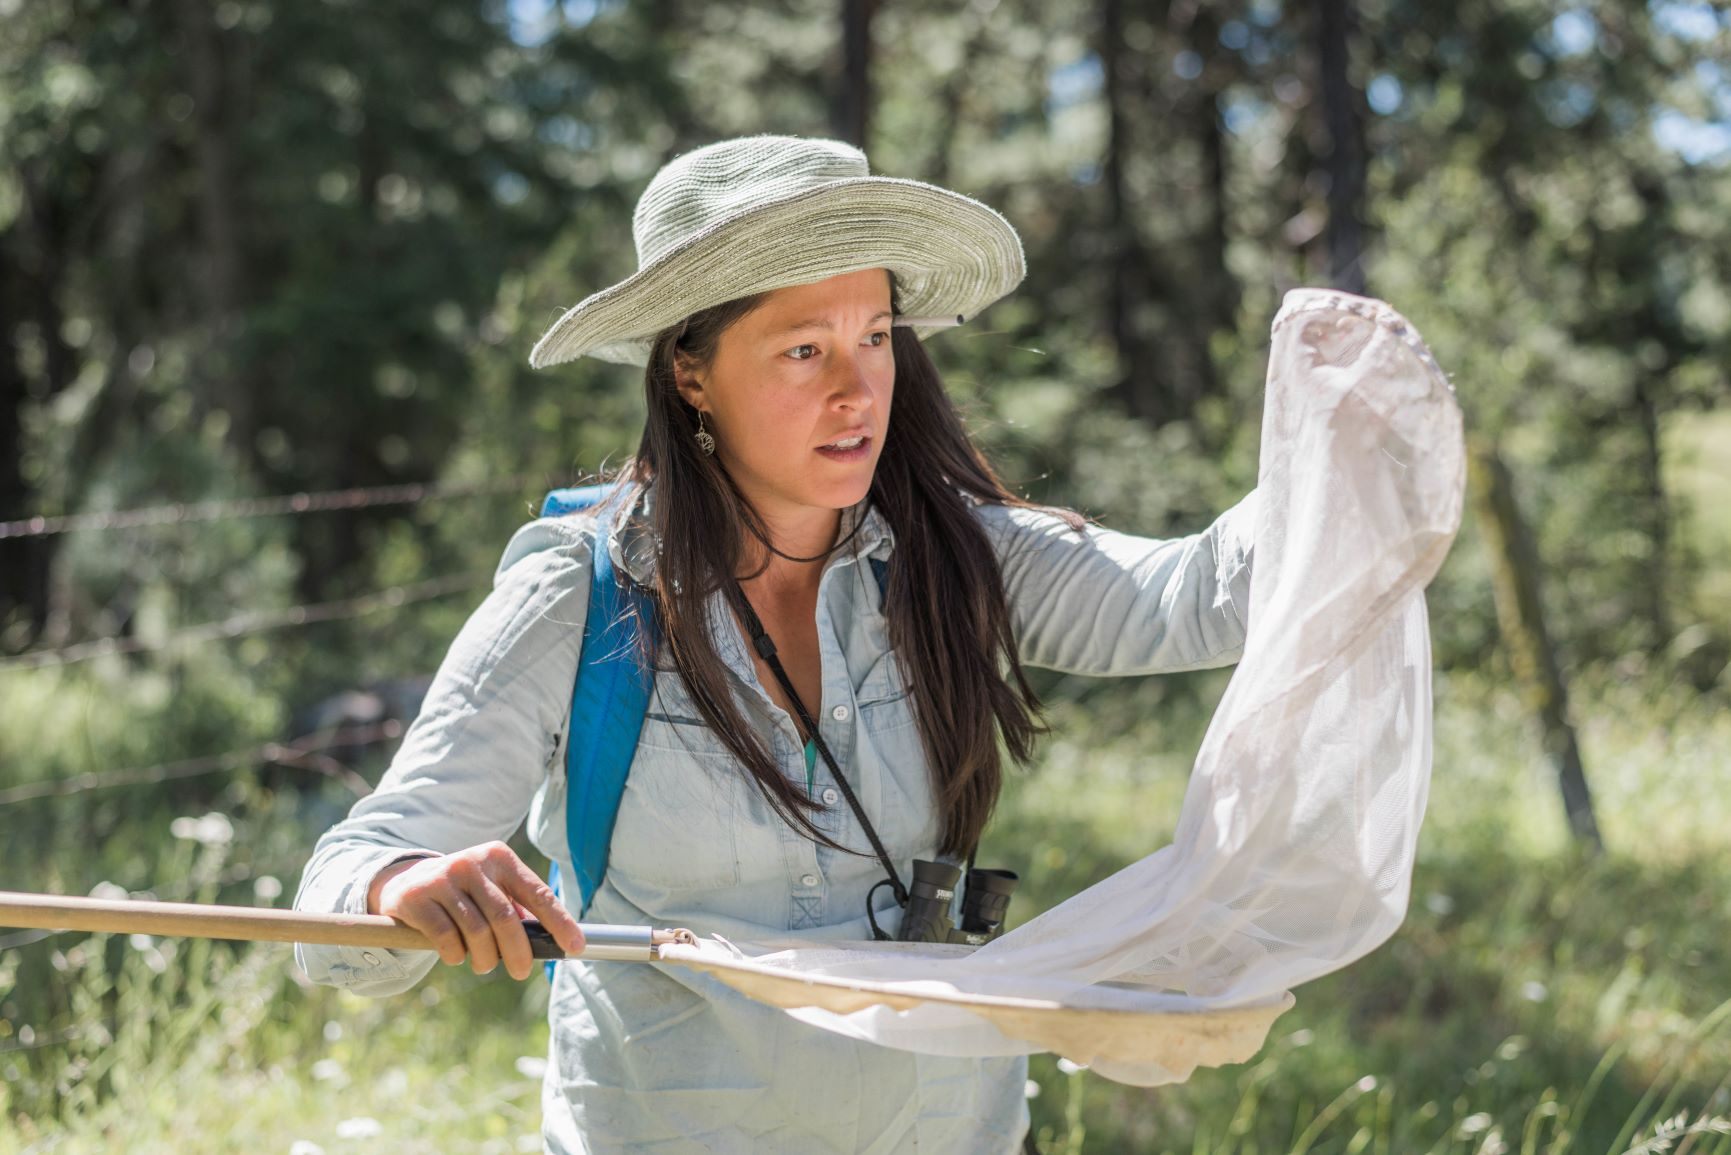 Shortly after the change of landownership, late June 2018, Program Director Jeanine Moy coordinated a small group of biologists for the first meadow survey for plants, birds, and pollinators at Vesper Meadow. Since then we have cataloged over 230 species of plants, over 70 species of birds, and over 30 species of pollinators (and counting!). This April - September 2019 will be the first full warm season for collecting baseline biological information.